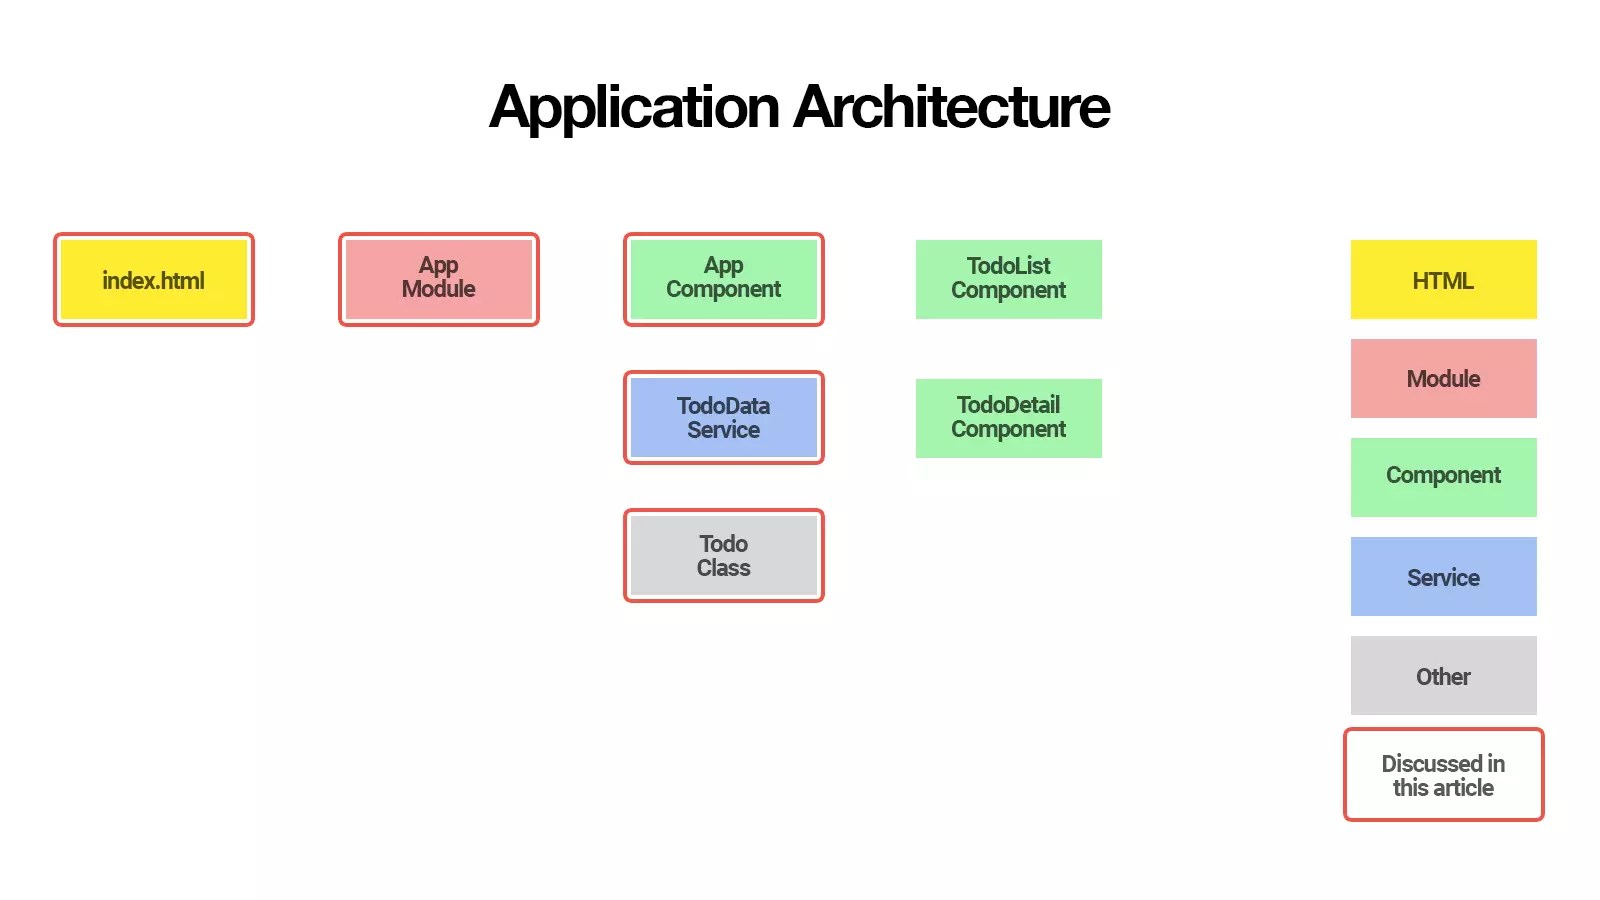 Application Architecture of Finished Todo Application